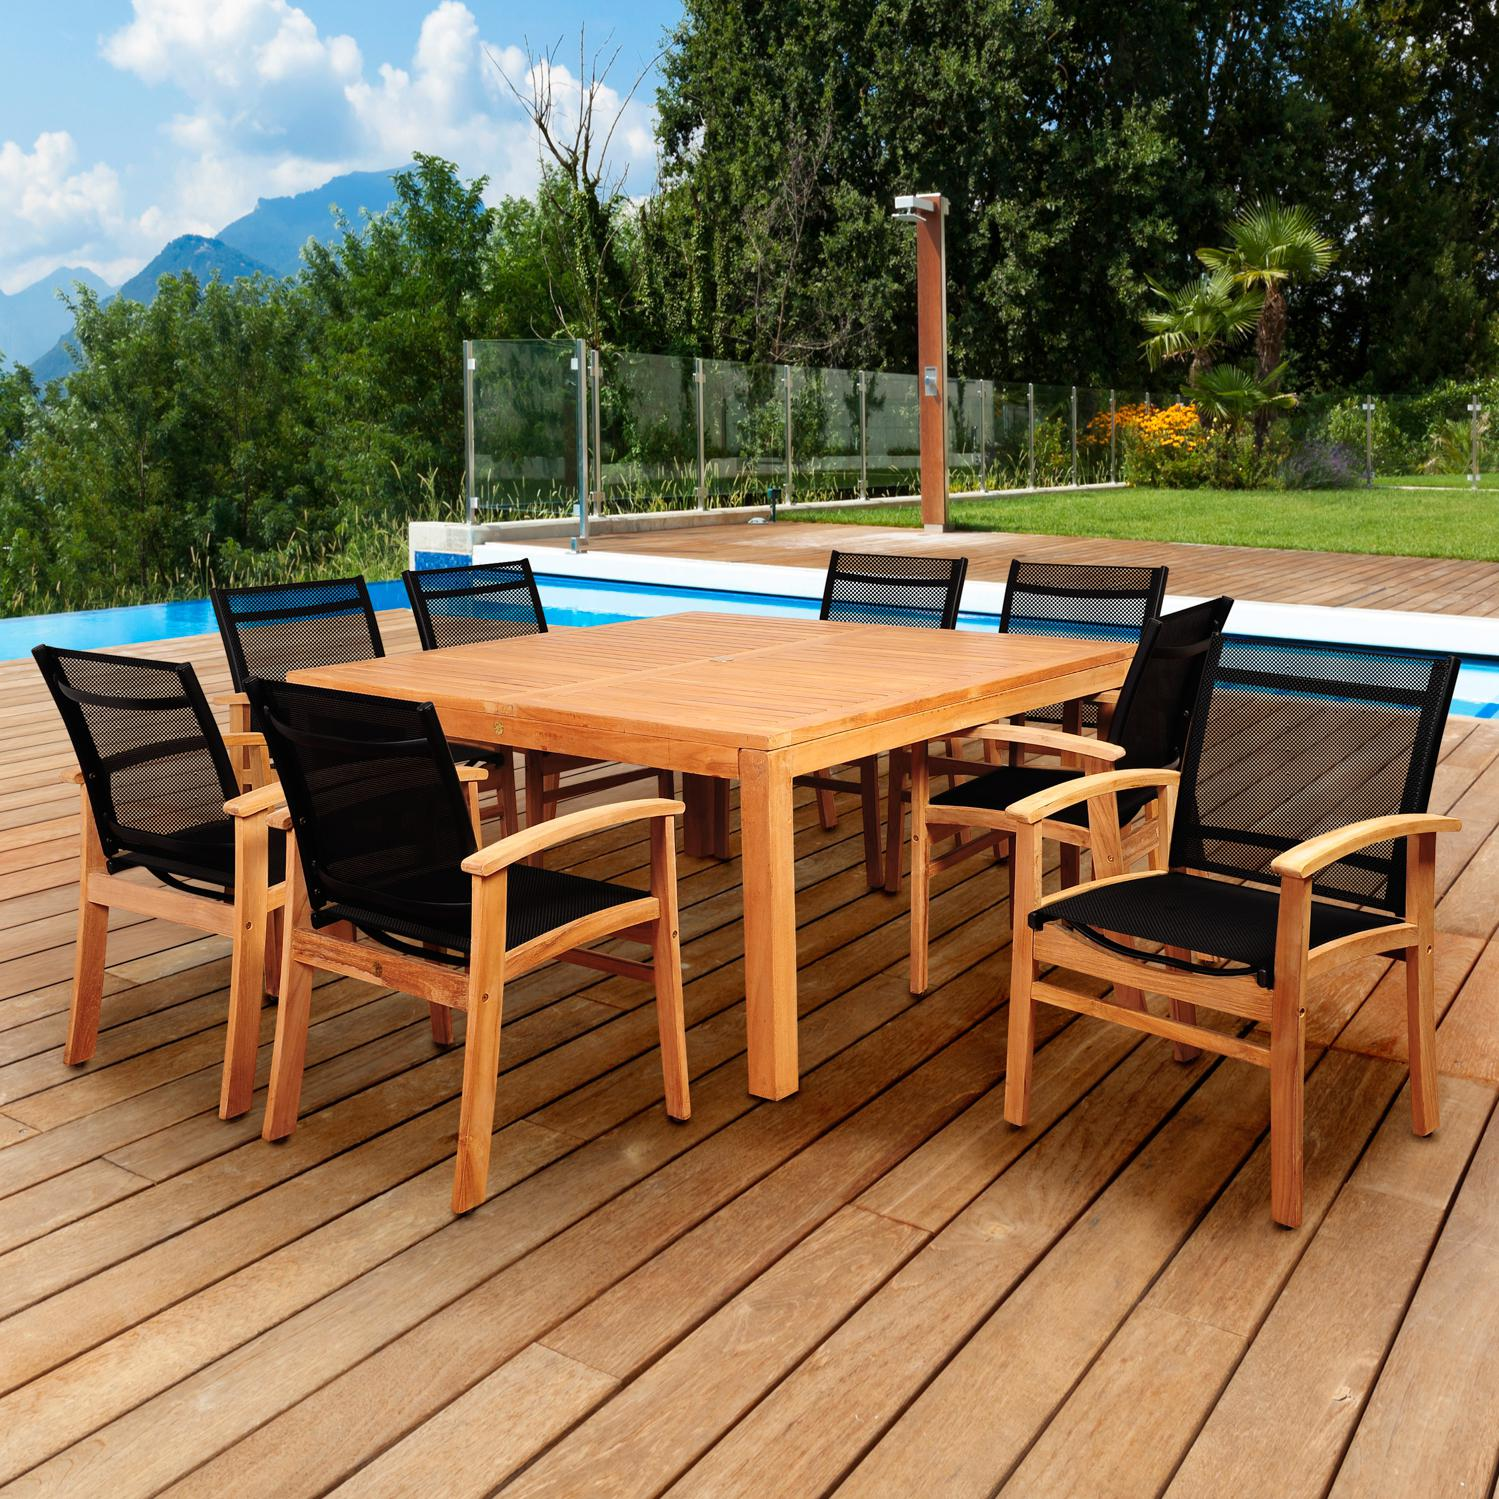 Amazonia Sunset View 8-person Sling Patio Dining Set With Teak Table